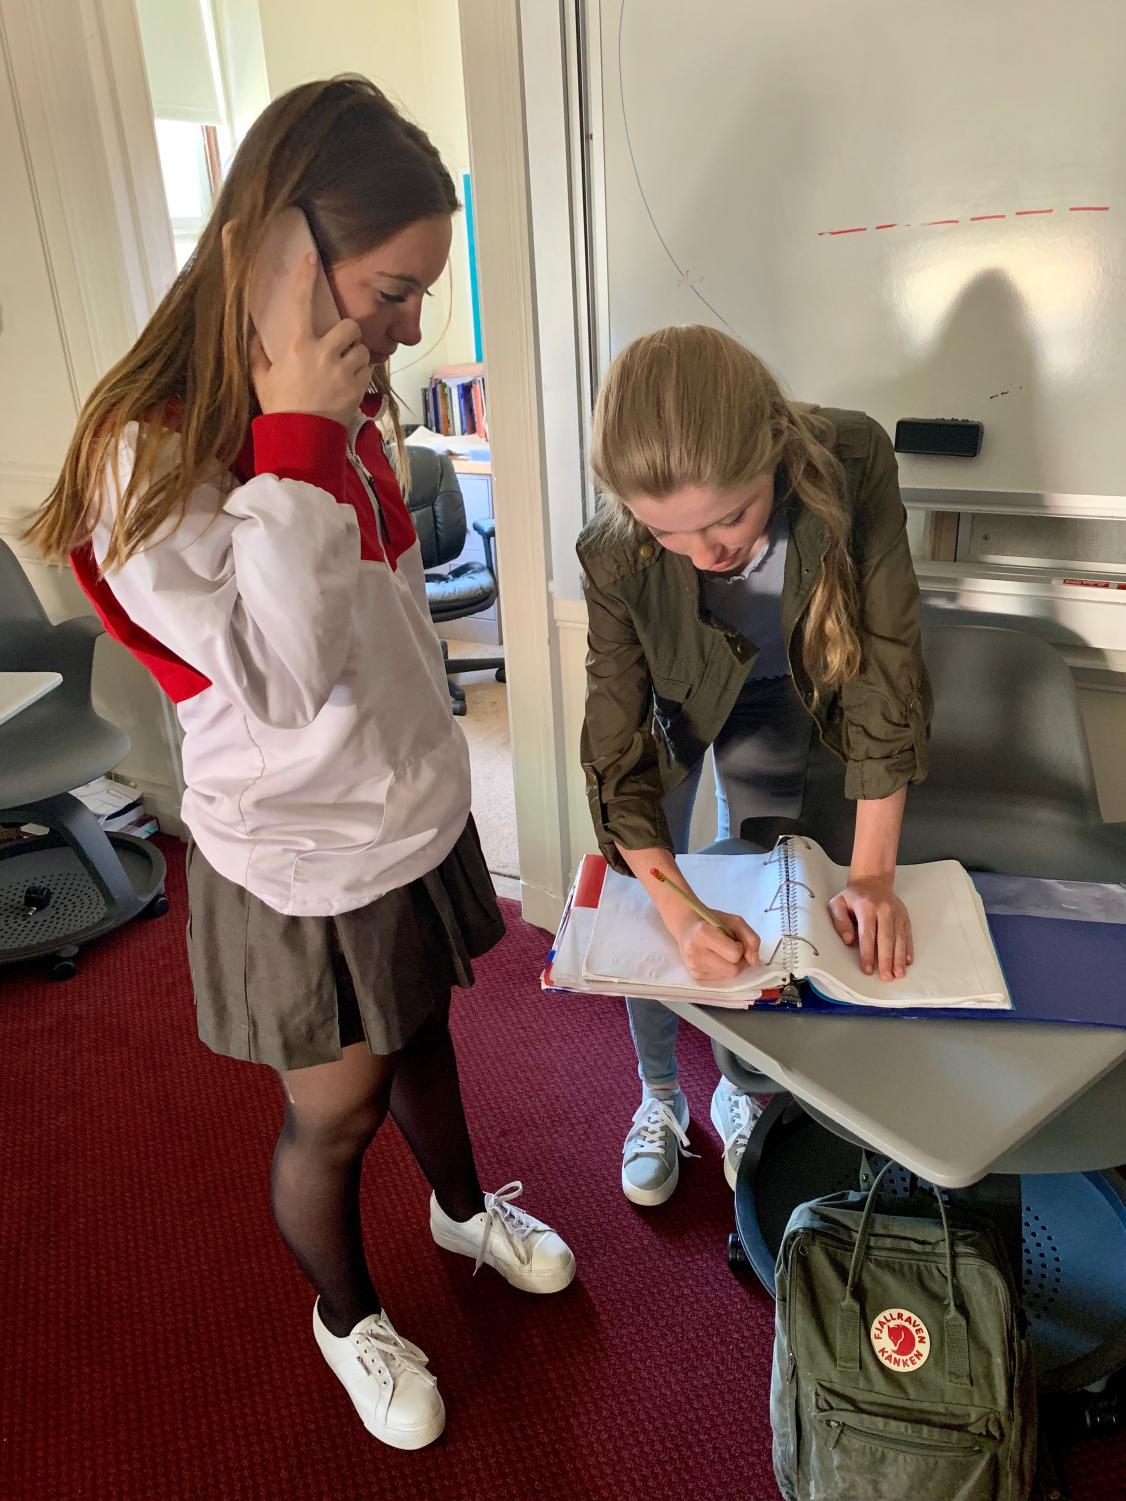 Sophomores Naia Urruty and Olivia Callander take notes while interviewing Jules His, a former exchange student from a Sacred Heart school in Nantes, France. Students were encouraged to speak to foreign exchange students to gain more  personal information about their exchange experiences.